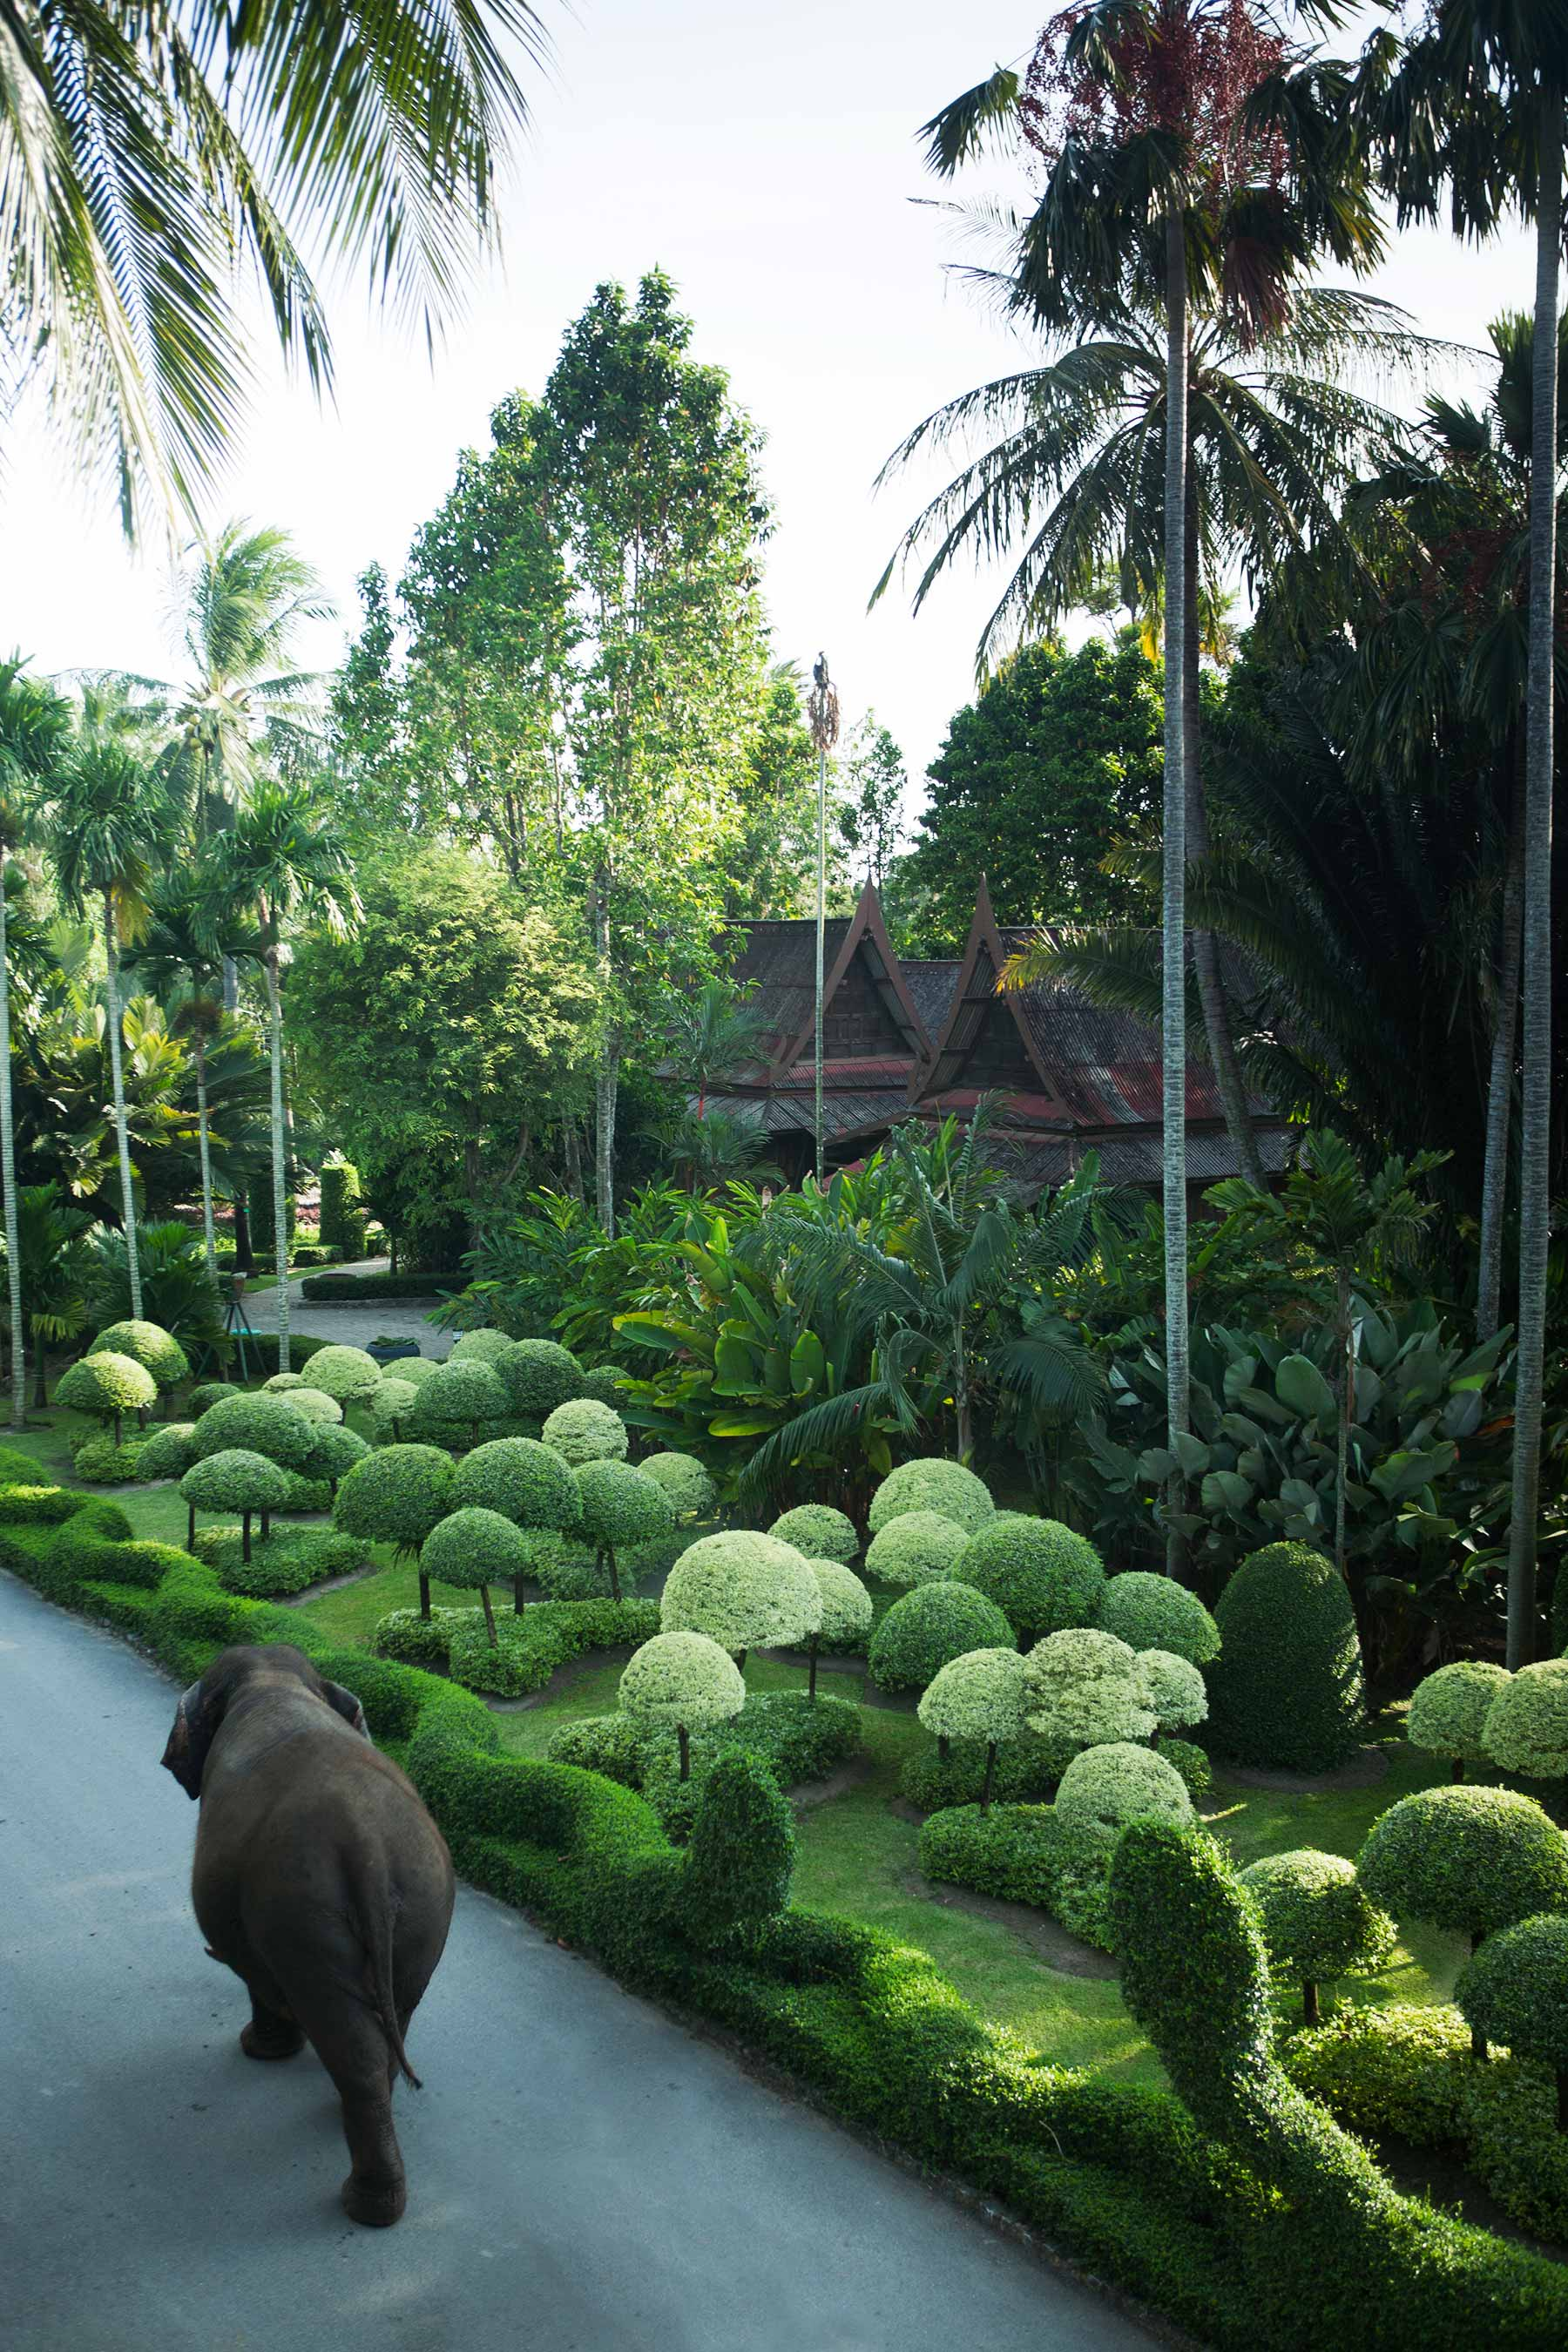 thailand_elephant_walking_park_IMG_8122websize.jpg